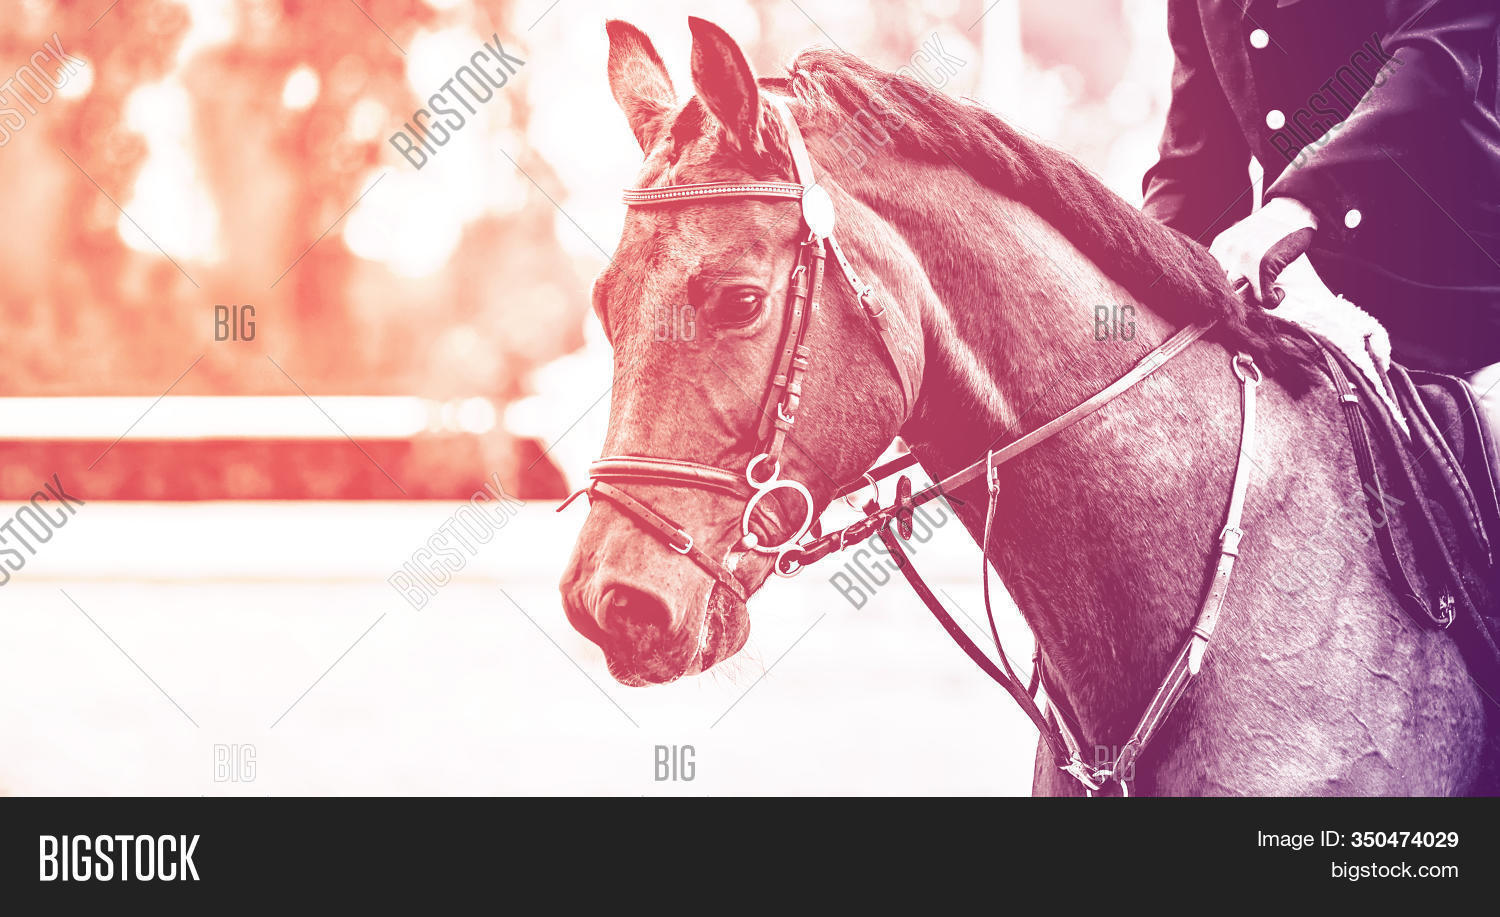 Black Dressage Horse Image Photo Free Trial Bigstock